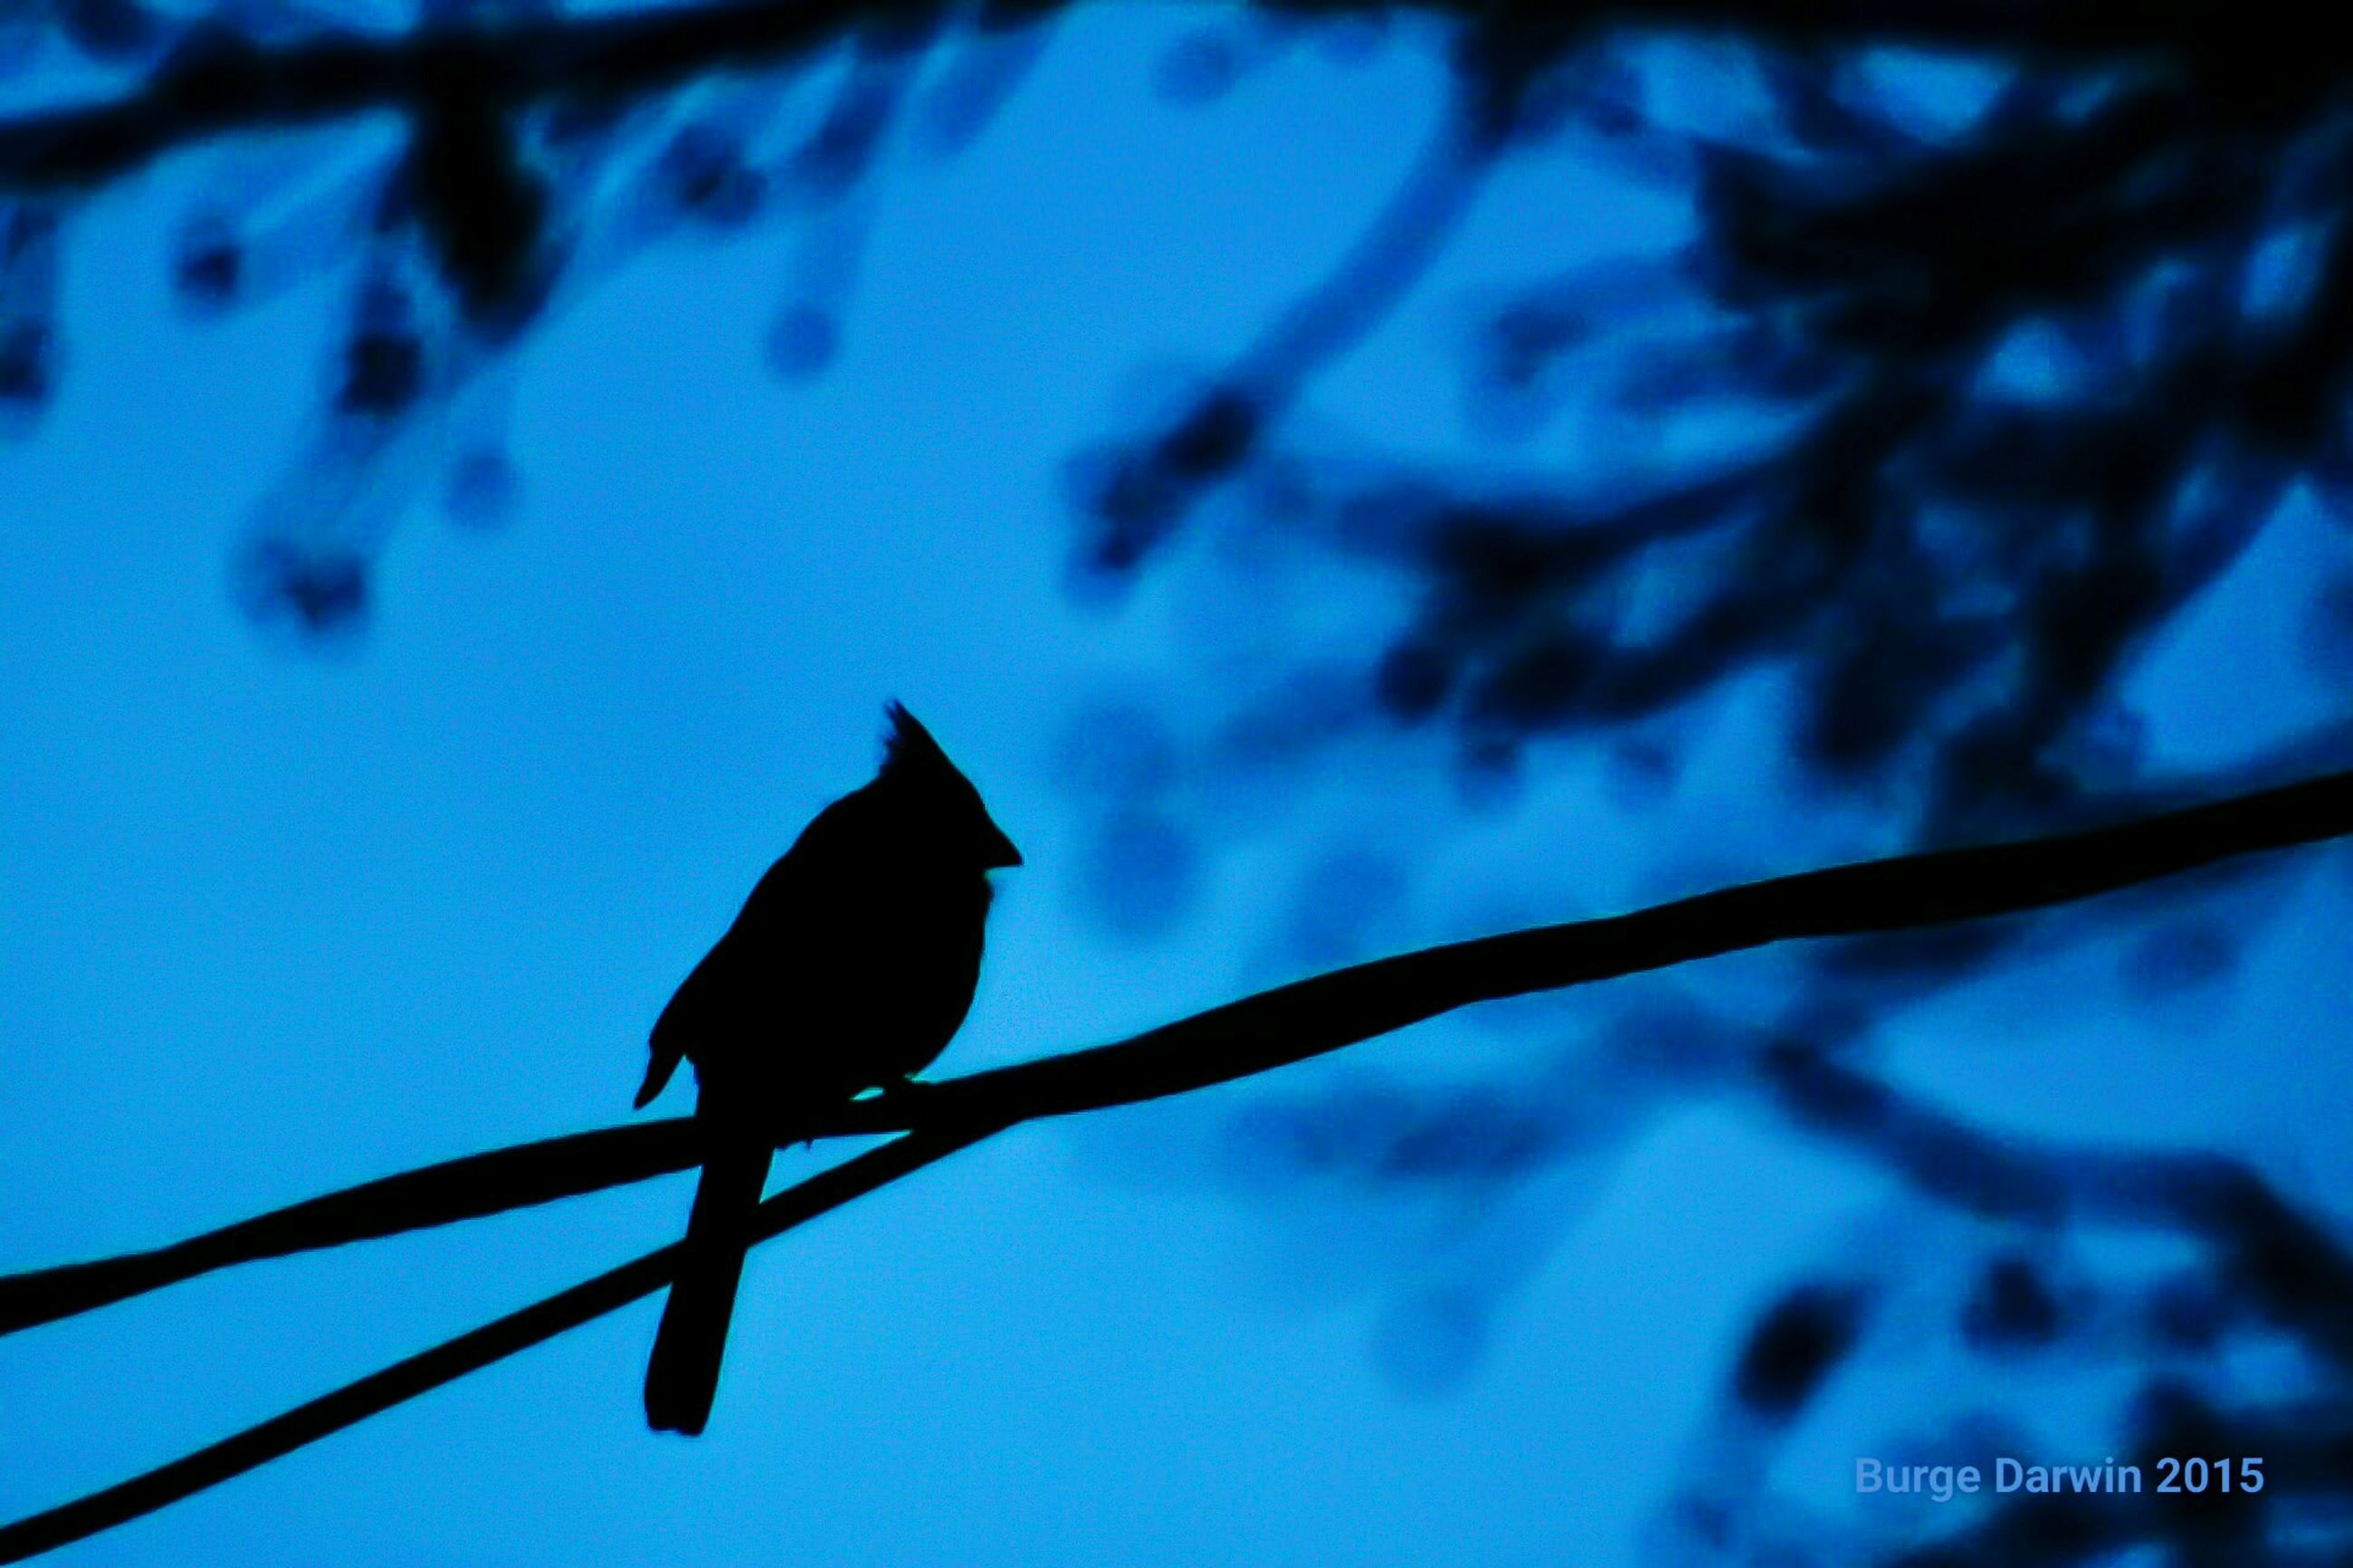 animal themes, animals in the wild, bird, wildlife, one animal, perching, low angle view, branch, full length, blue, nature, focus on foreground, clear sky, silhouette, tree, outdoors, zoology, day, no people, selective focus